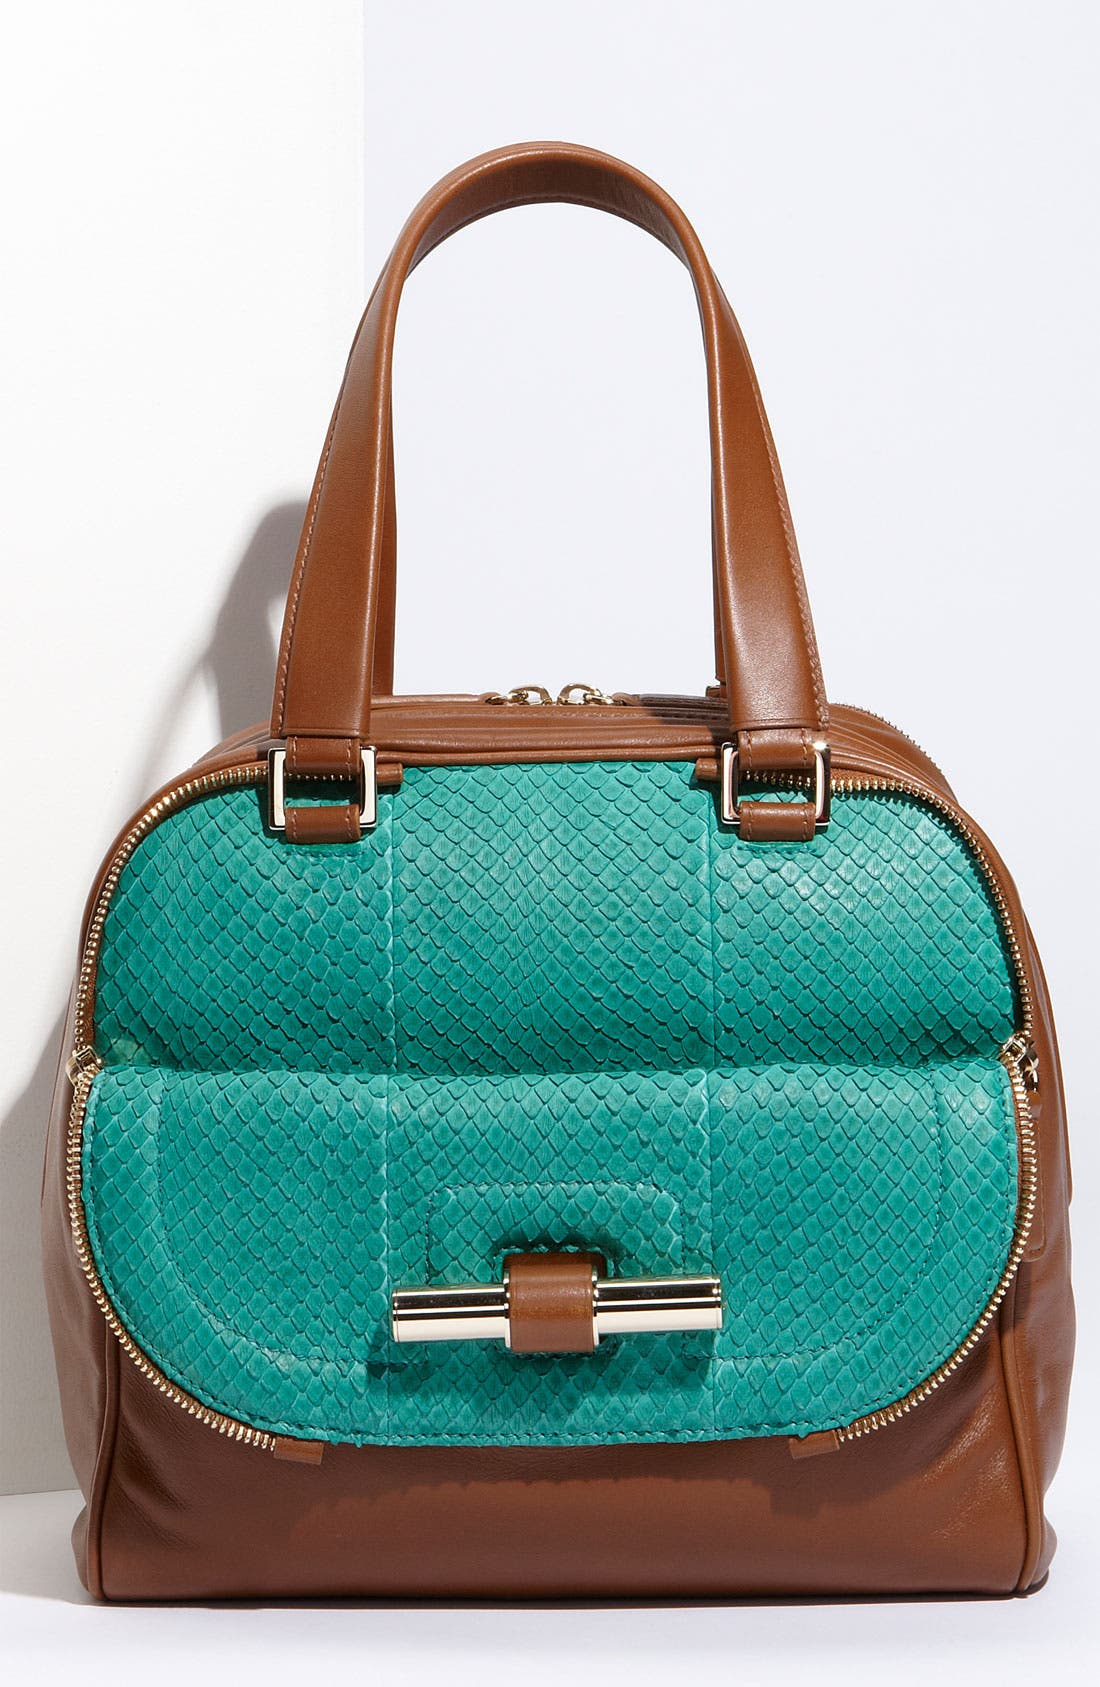 Main Image - Jimmy Choo 'Justine - Small' Leather & Genuine Anaconda Satchel